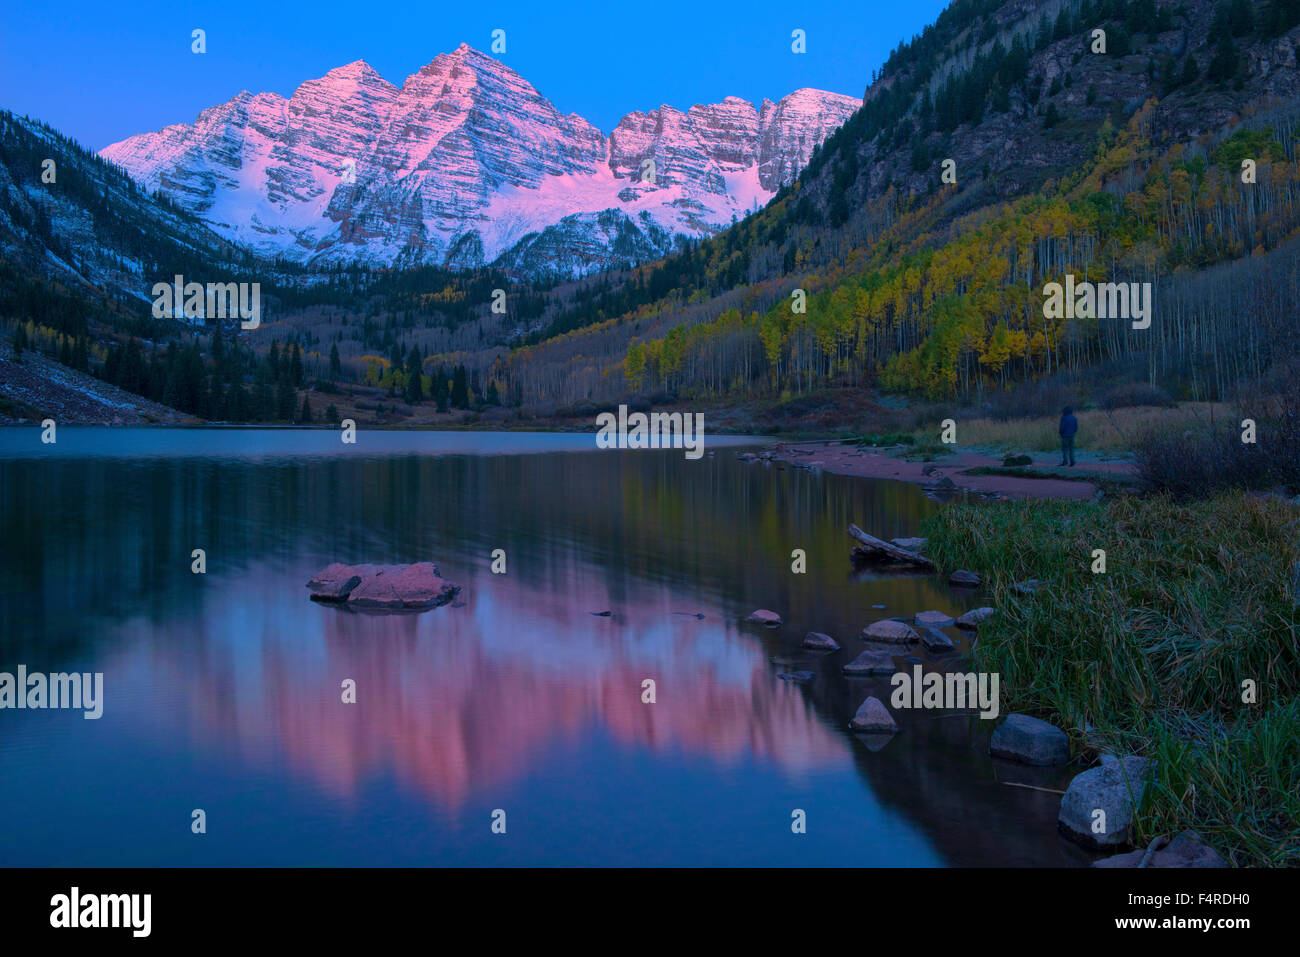 USA UnitedStates America Colorado Rocky Mountains Aspen - United states mountains